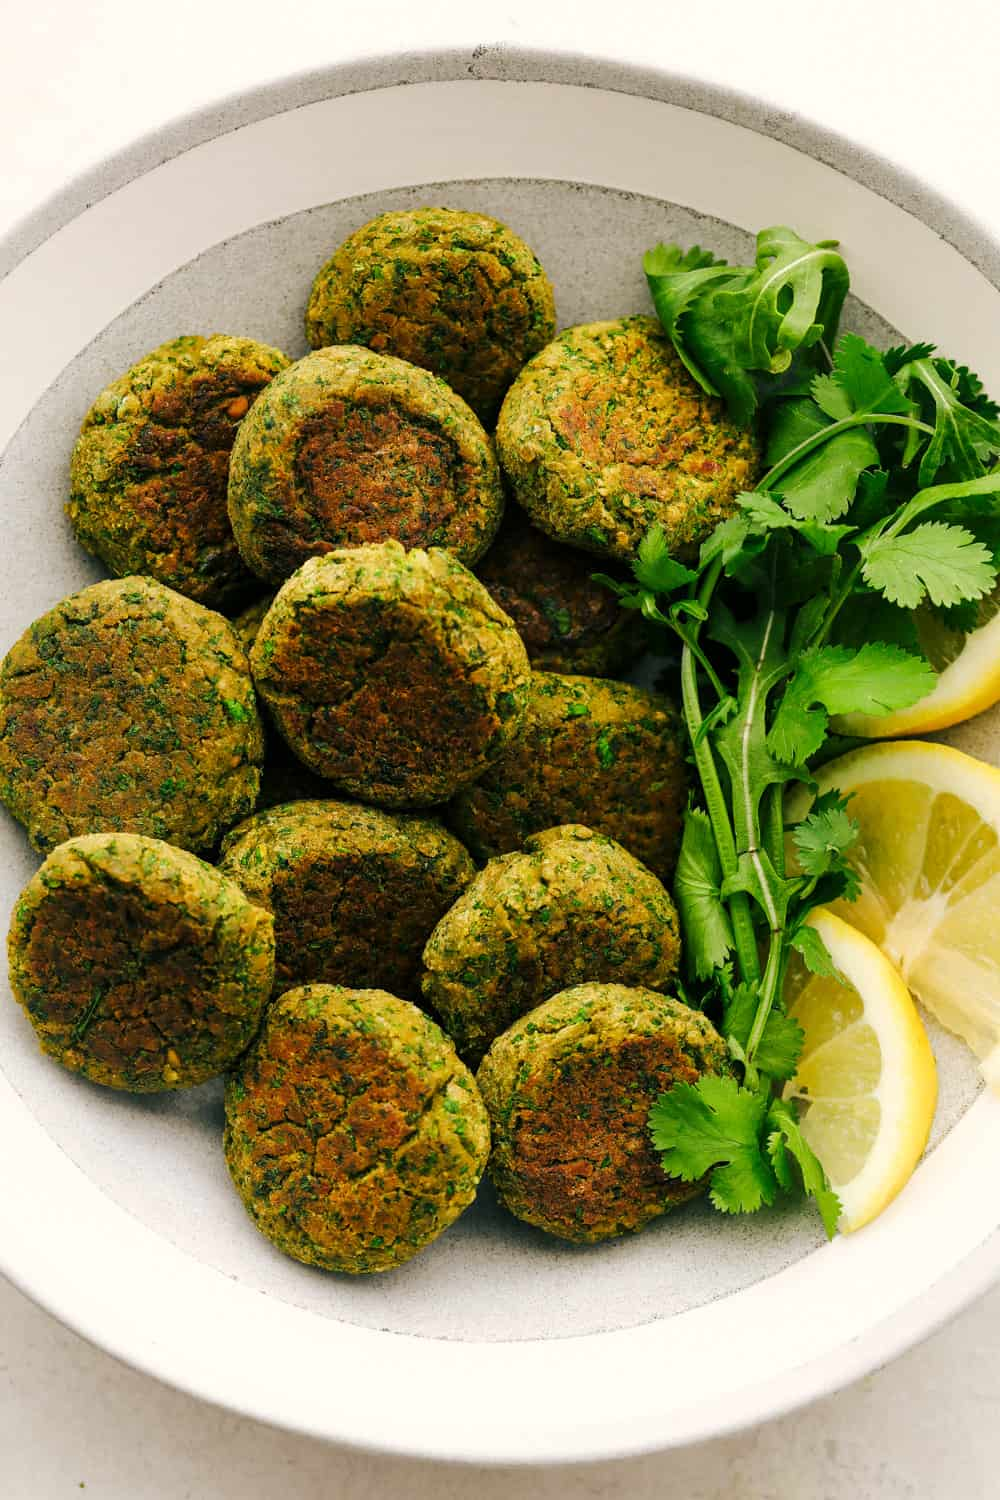 Falafel on a plate with lemon as a garnish and cilantro.